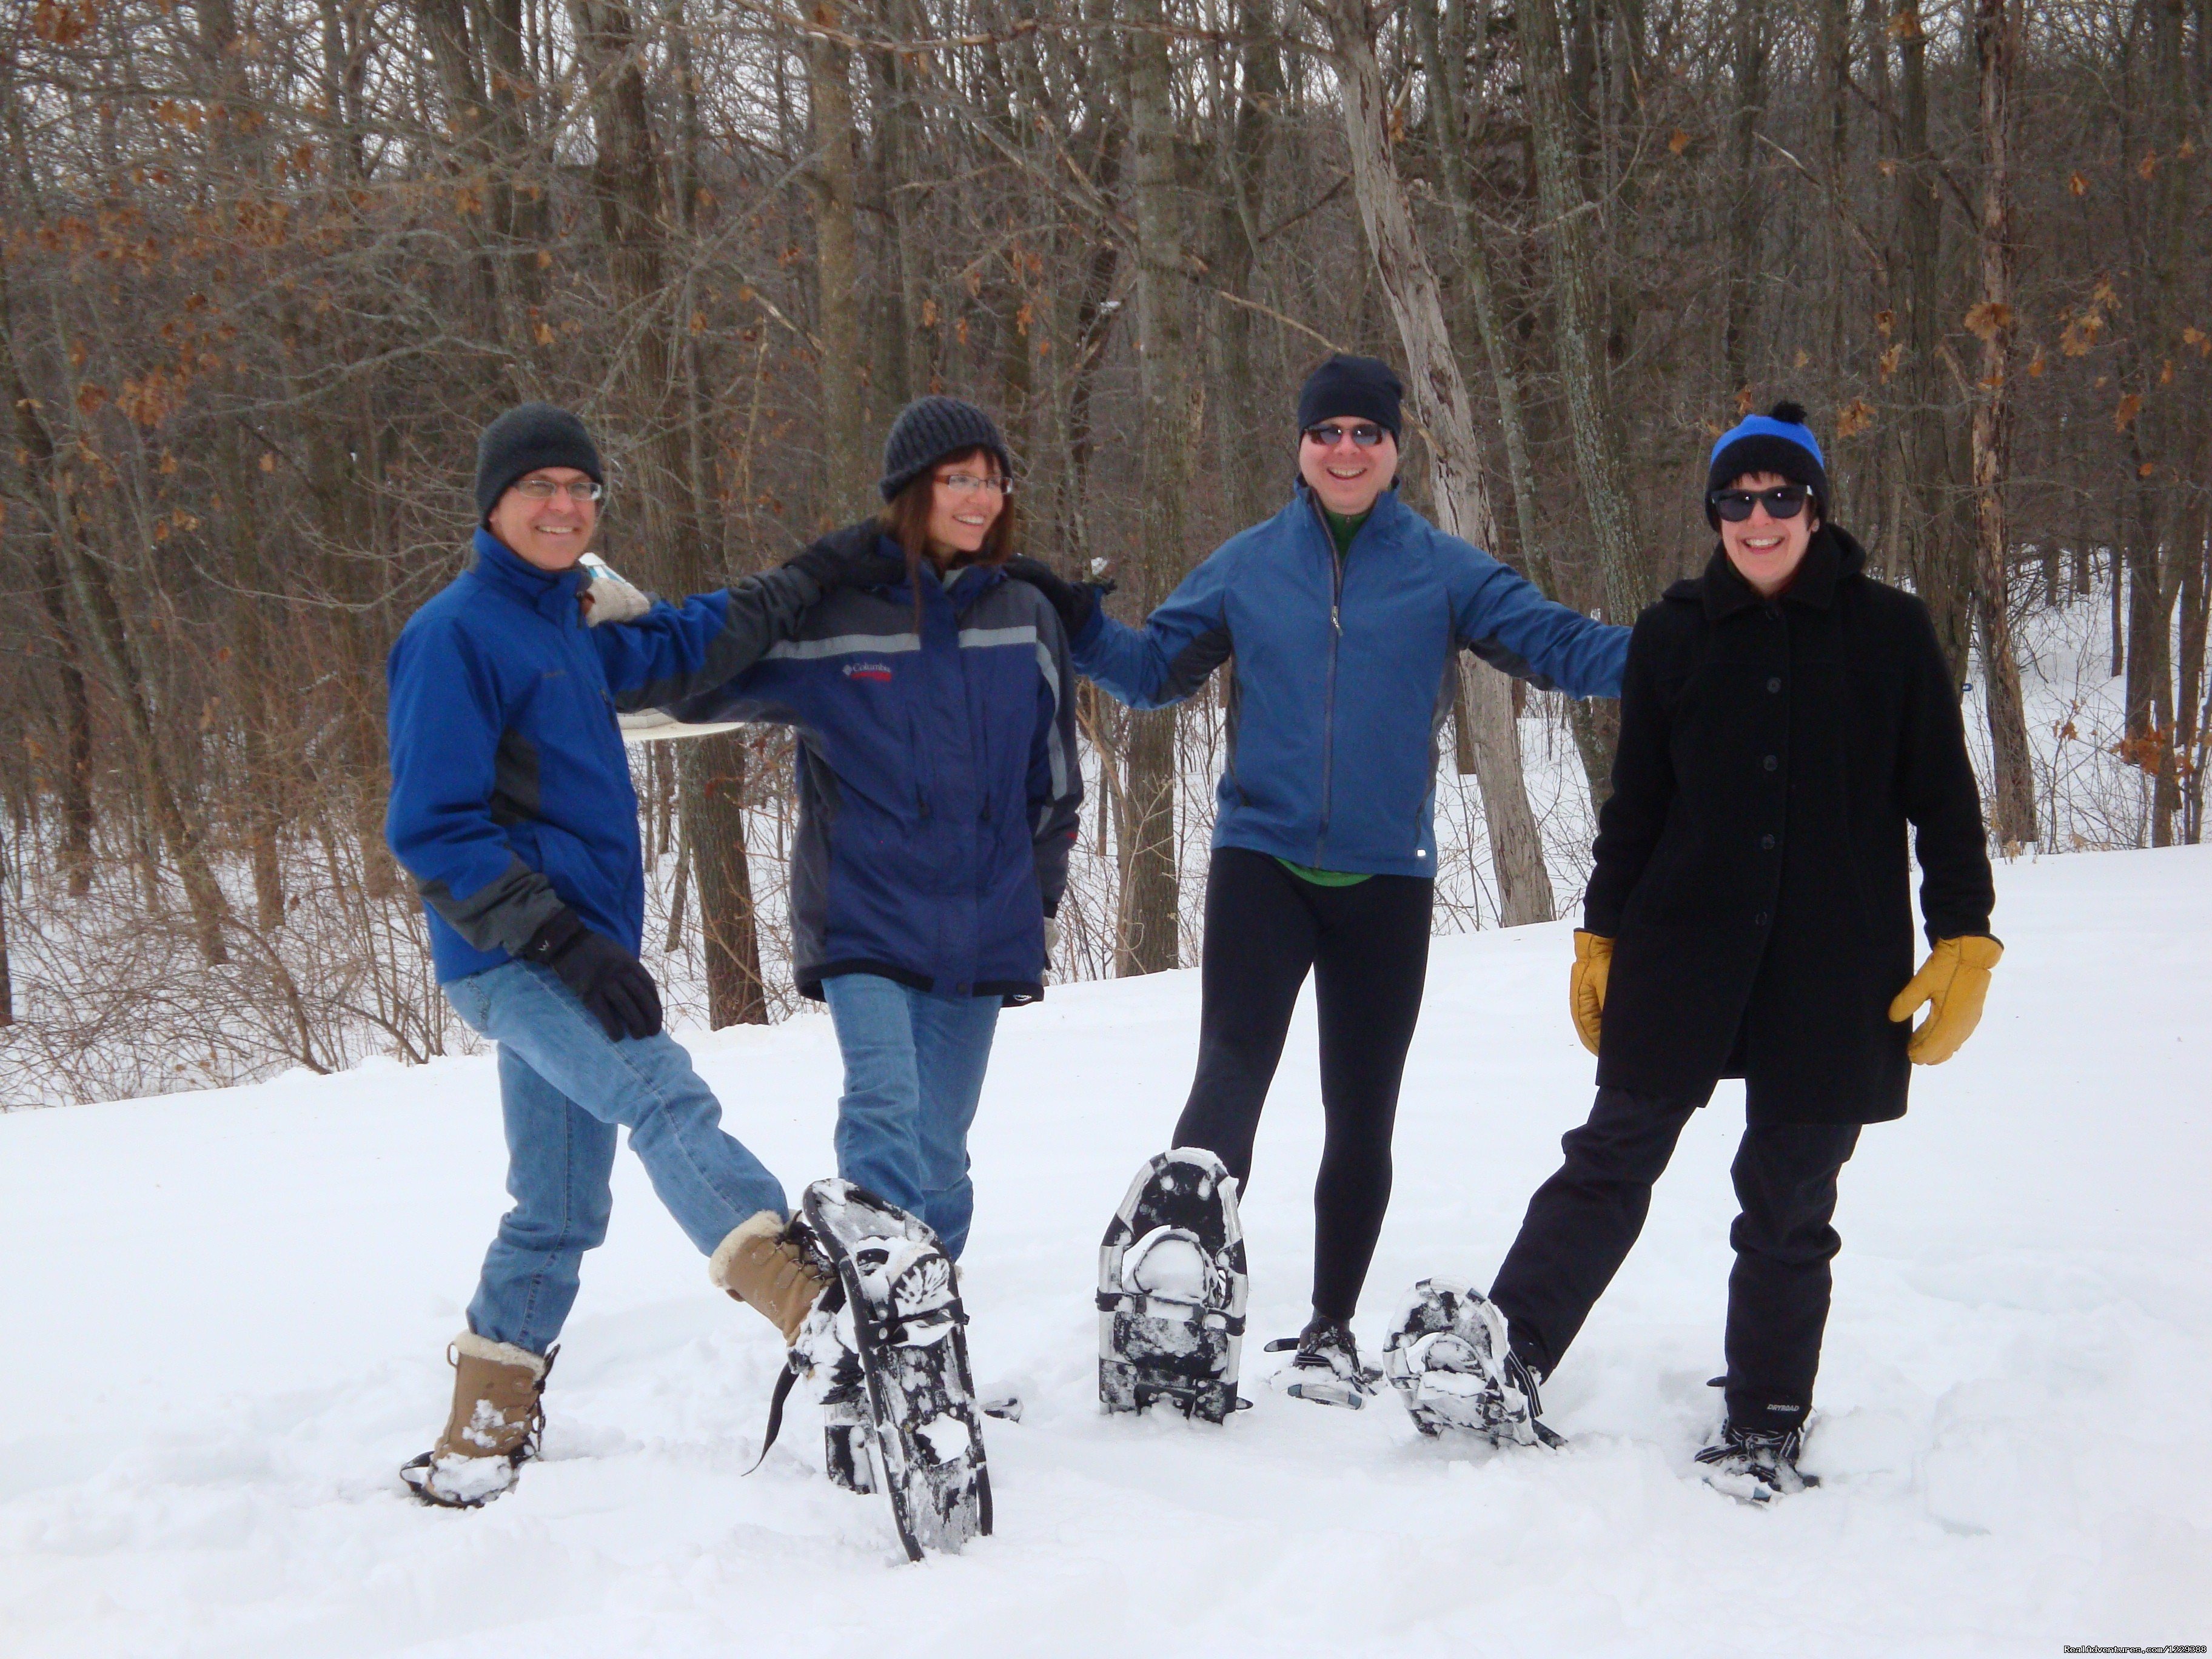 Guests on Snowshoe Trails